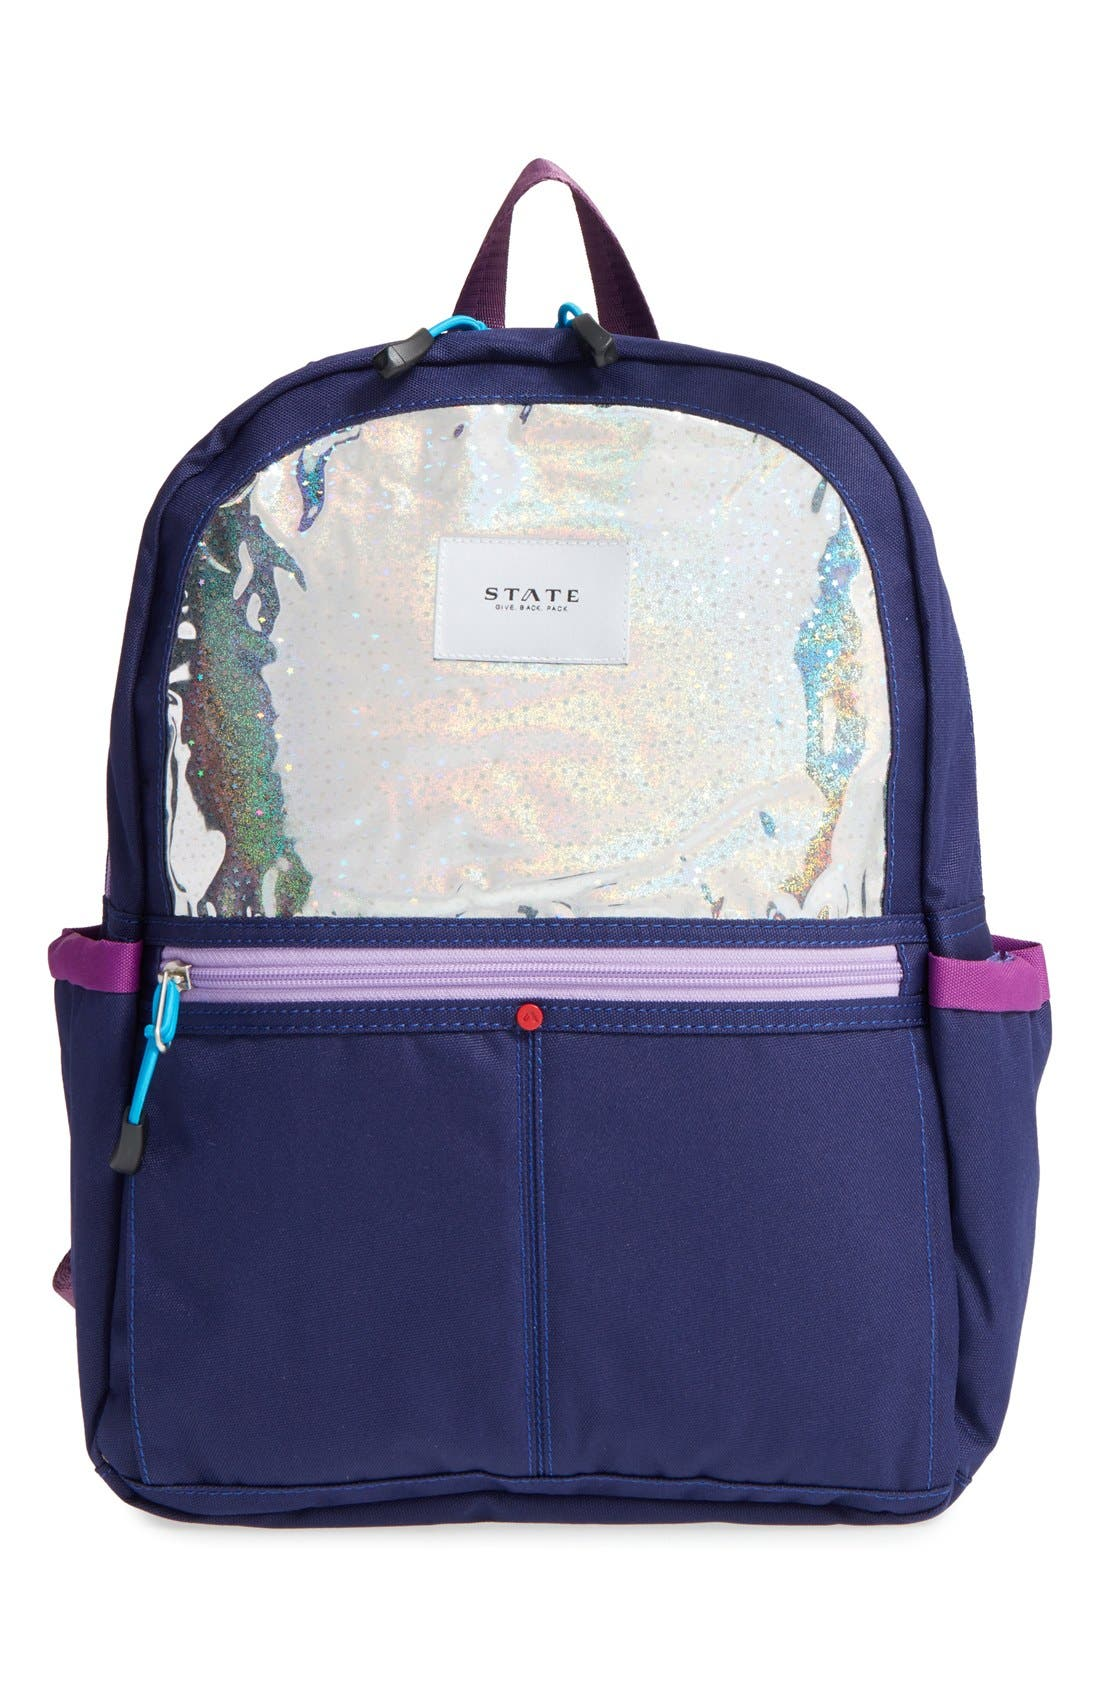 STATE BAGS,                             'Kane' Backpack,                             Main thumbnail 1, color,                             500